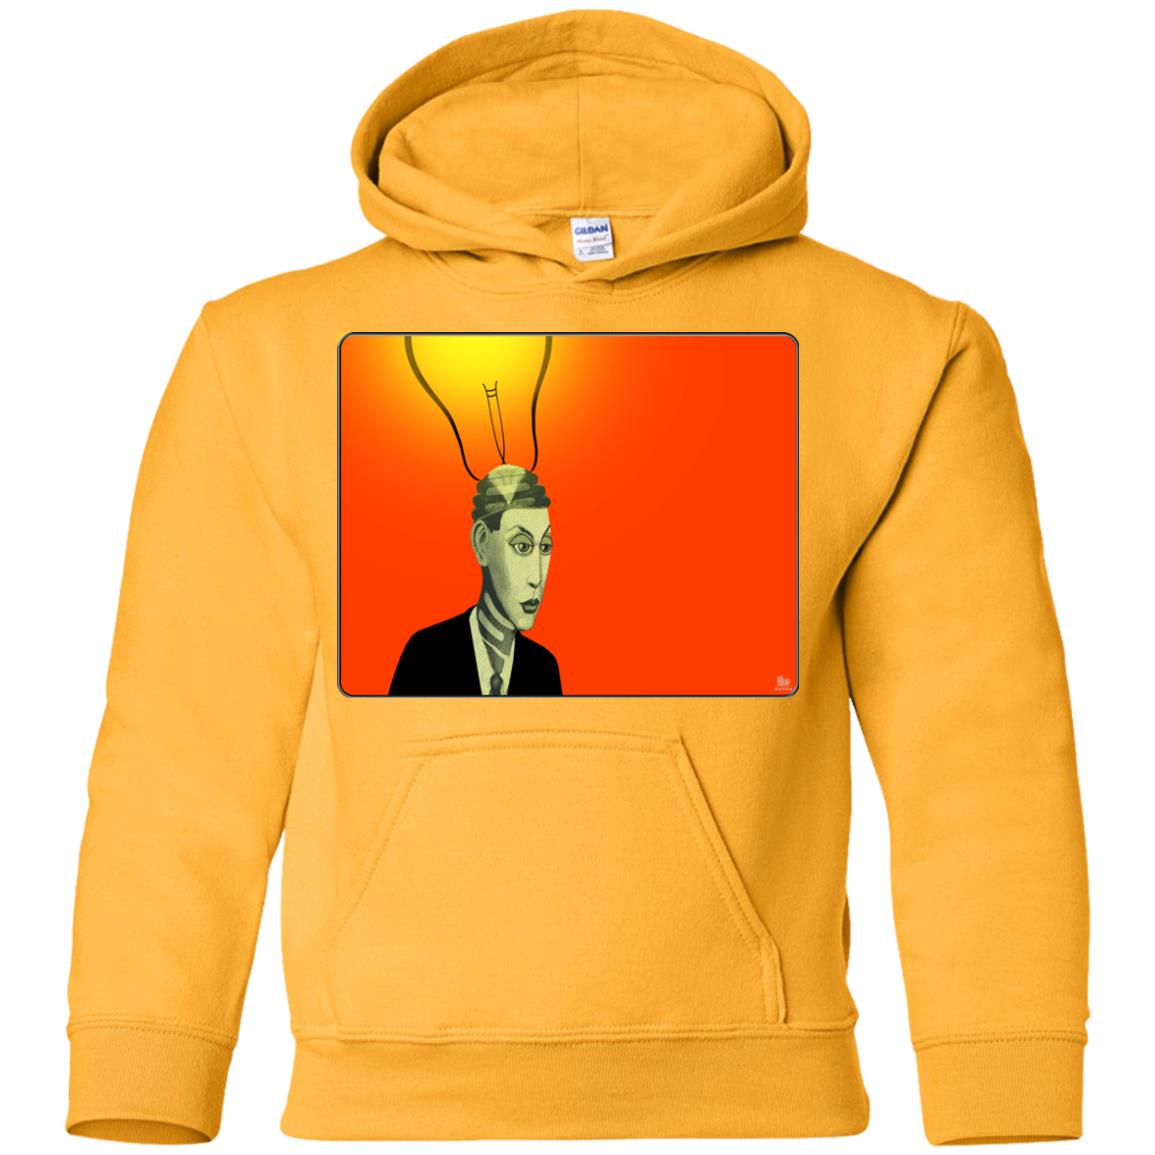 bright idea - Youth Hoodie